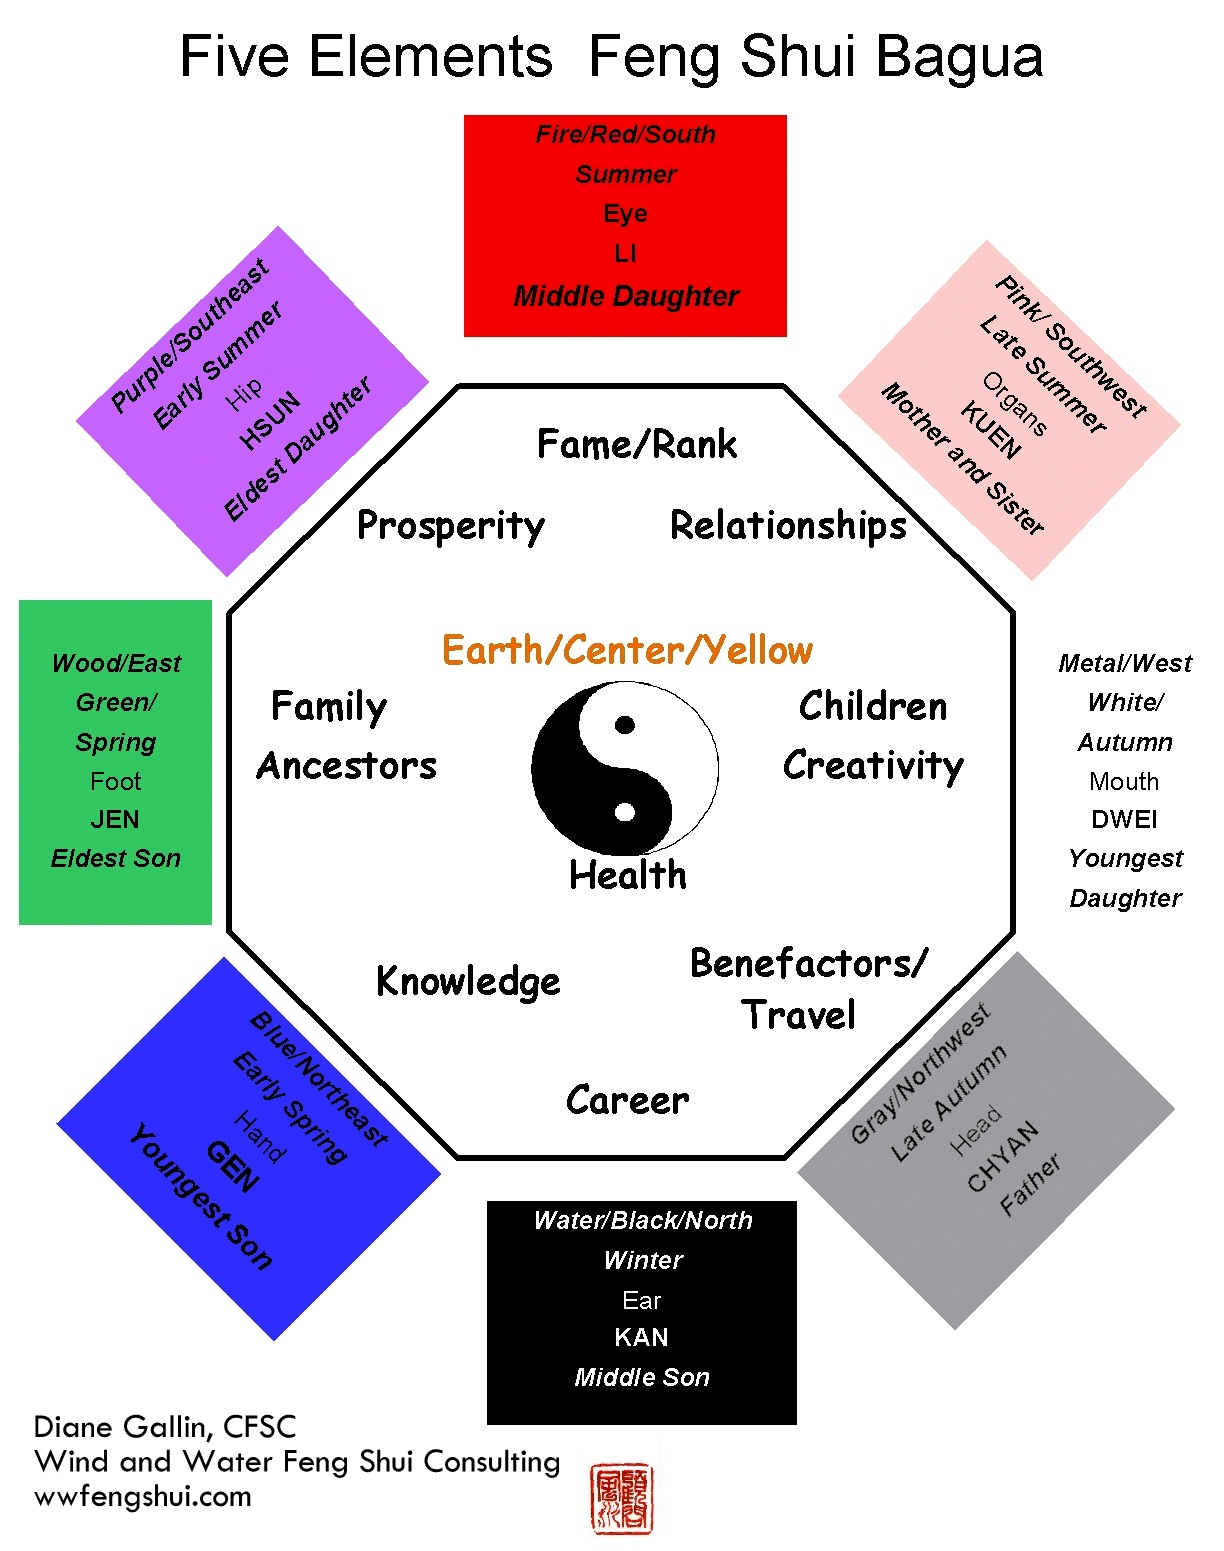 The feng shui bagua wind and water feng shui consulting - Feng shui kleursalon ...